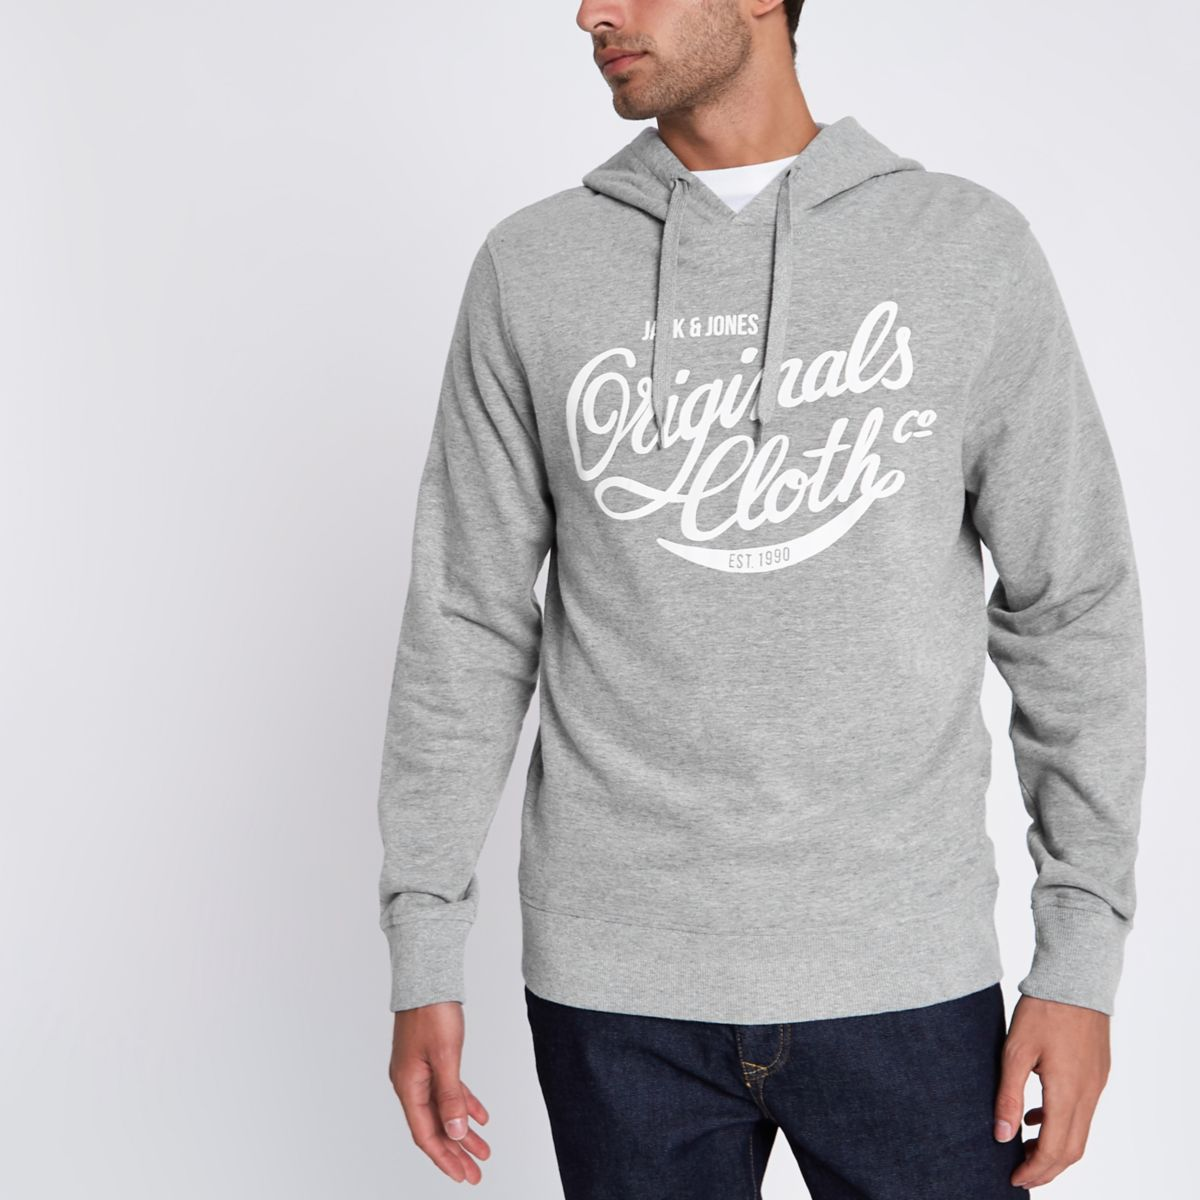 Jack & Jones grey sweatshirt hoodie